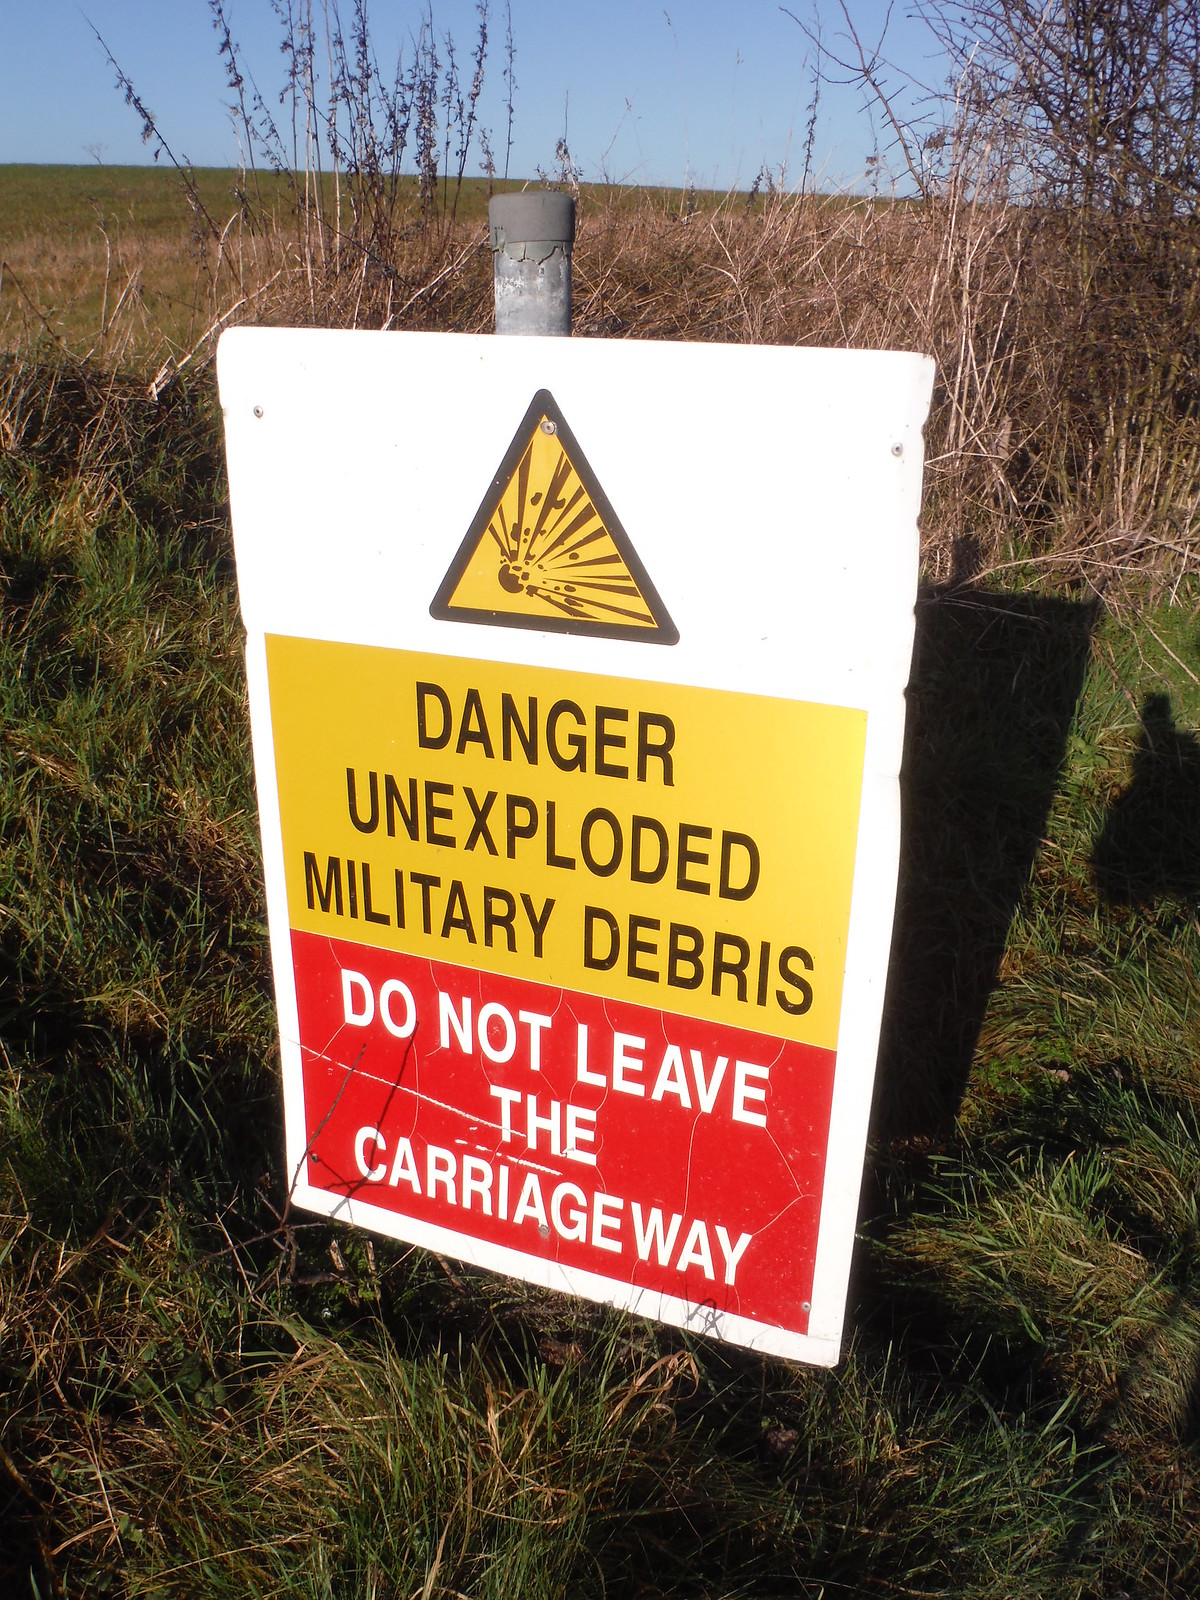 Imber Range, Warning Sign SWC Walk 286 Westbury to Warminster (via Imber Range)